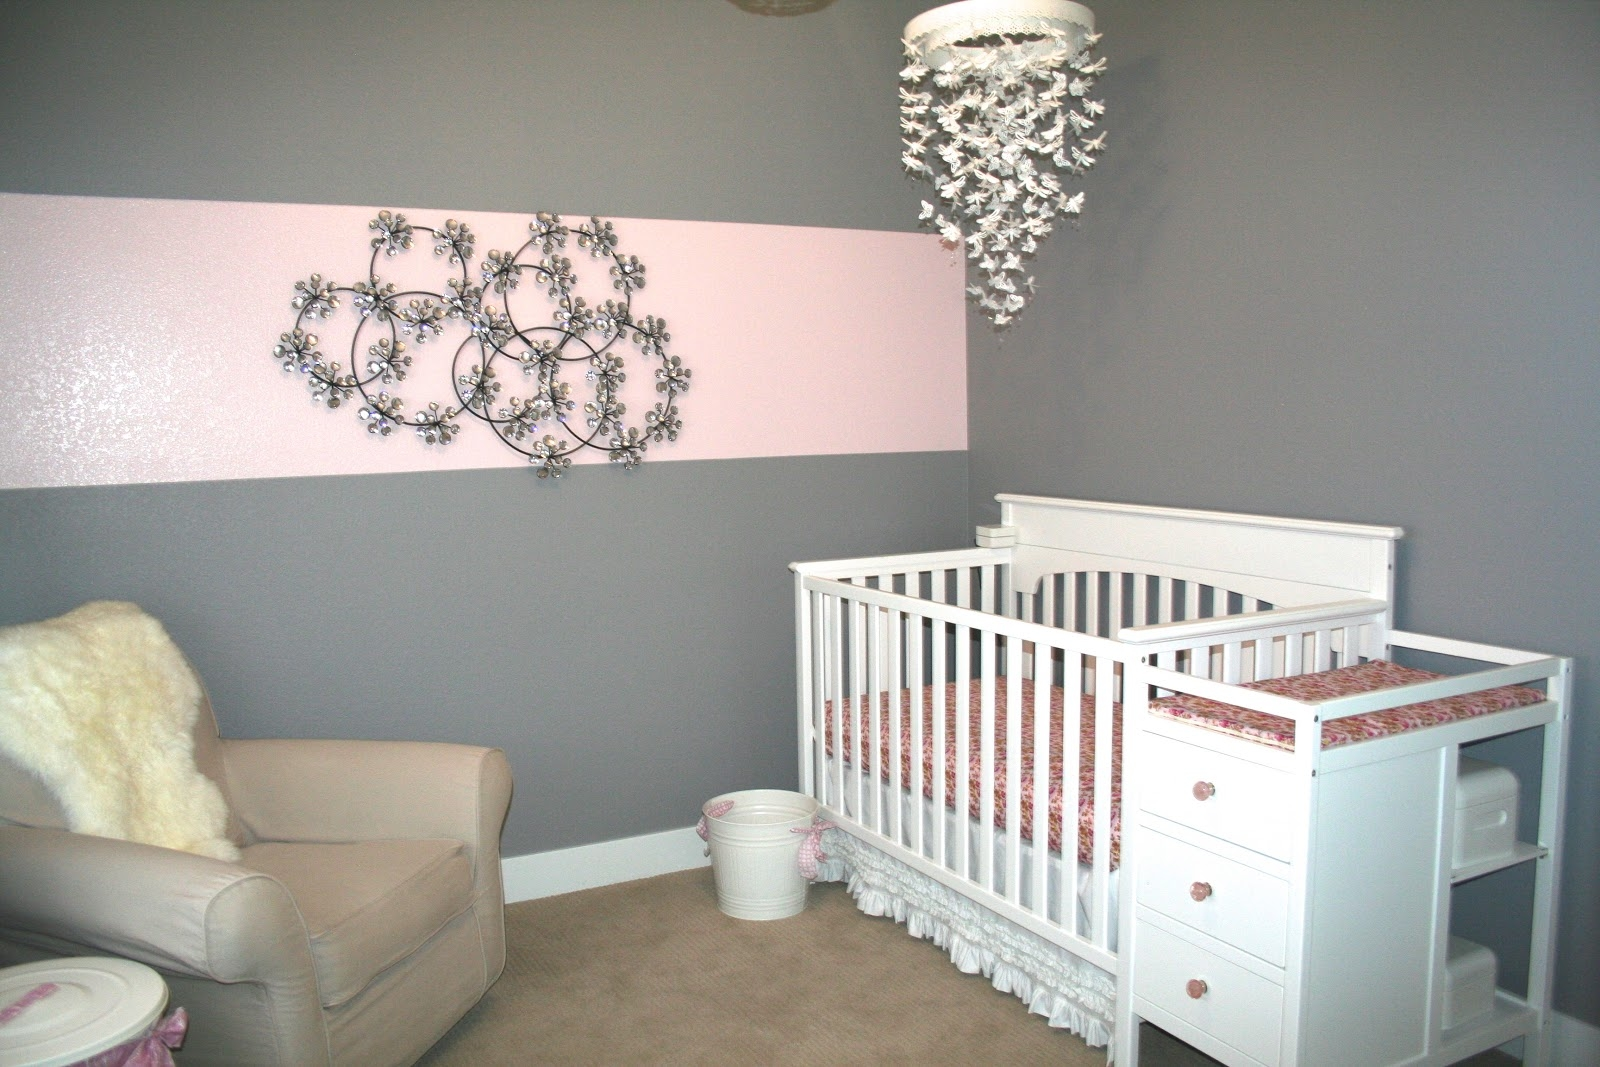 Superb Chandeliers For Ba Room 16 Chandeliers For Ba Room Within Crystal Chandeliers For Baby Girl Room (View 10 of 25)